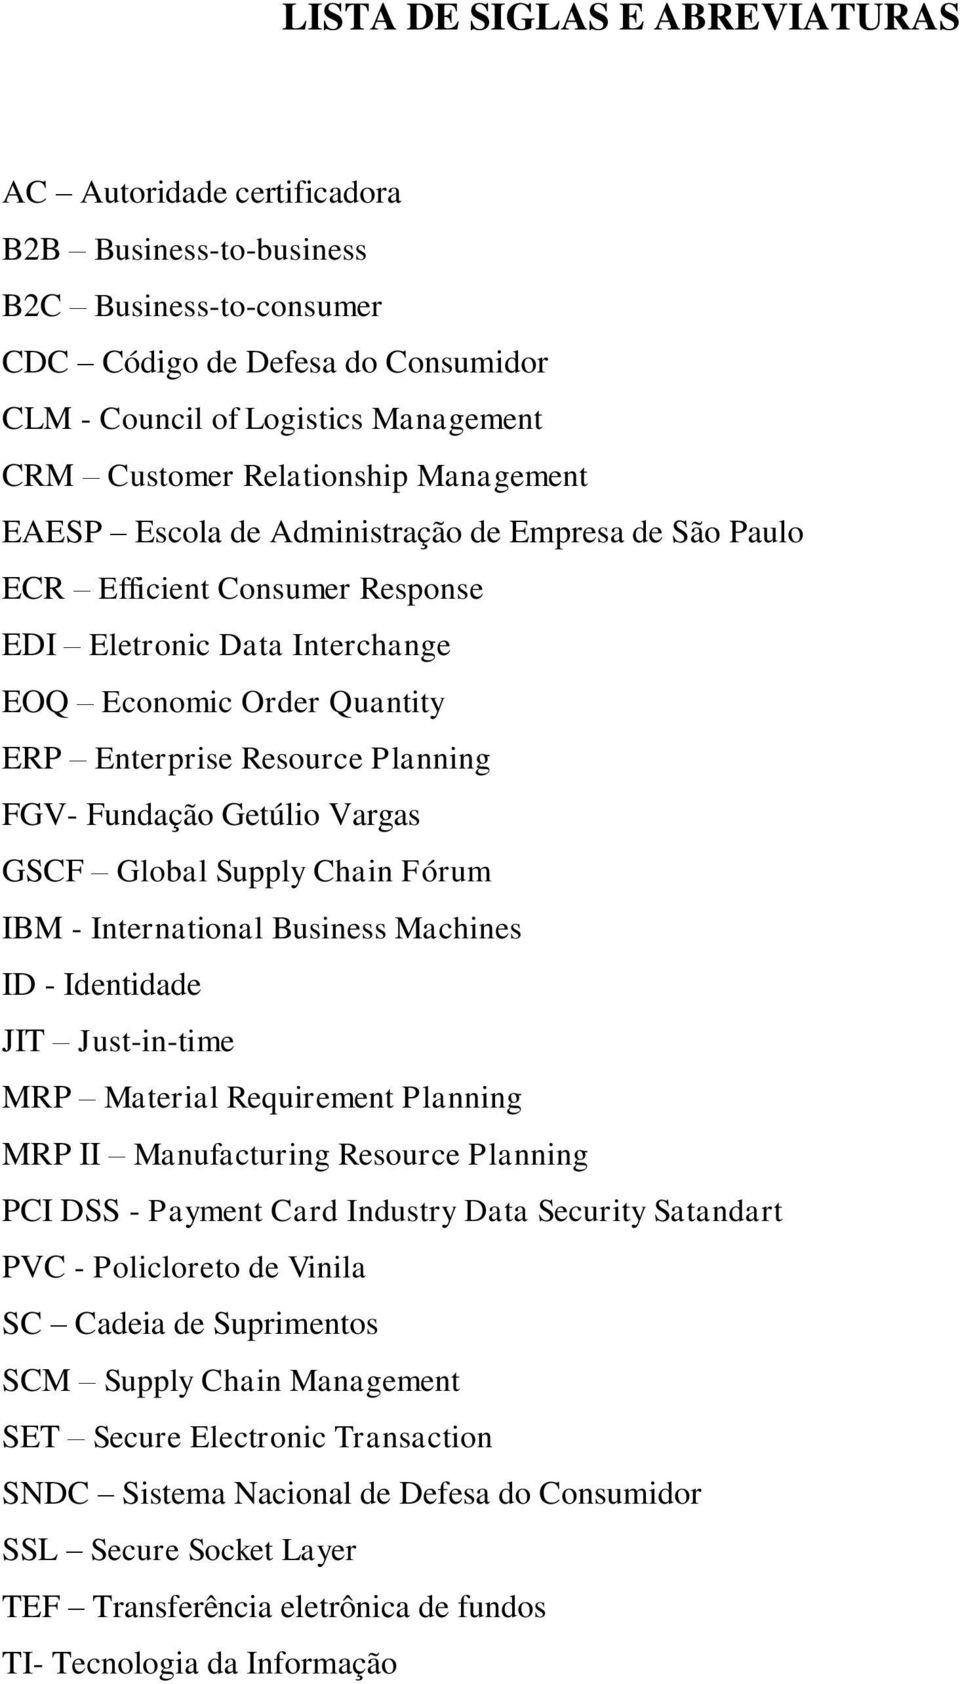 Planning FGV- Fundação Getúlio Vargas GSCF Global Supply Chain Fórum IBM - International Business Machines ID - Identidade JIT Just-in-time MRP Material Requirement Planning MRP II Manufacturing